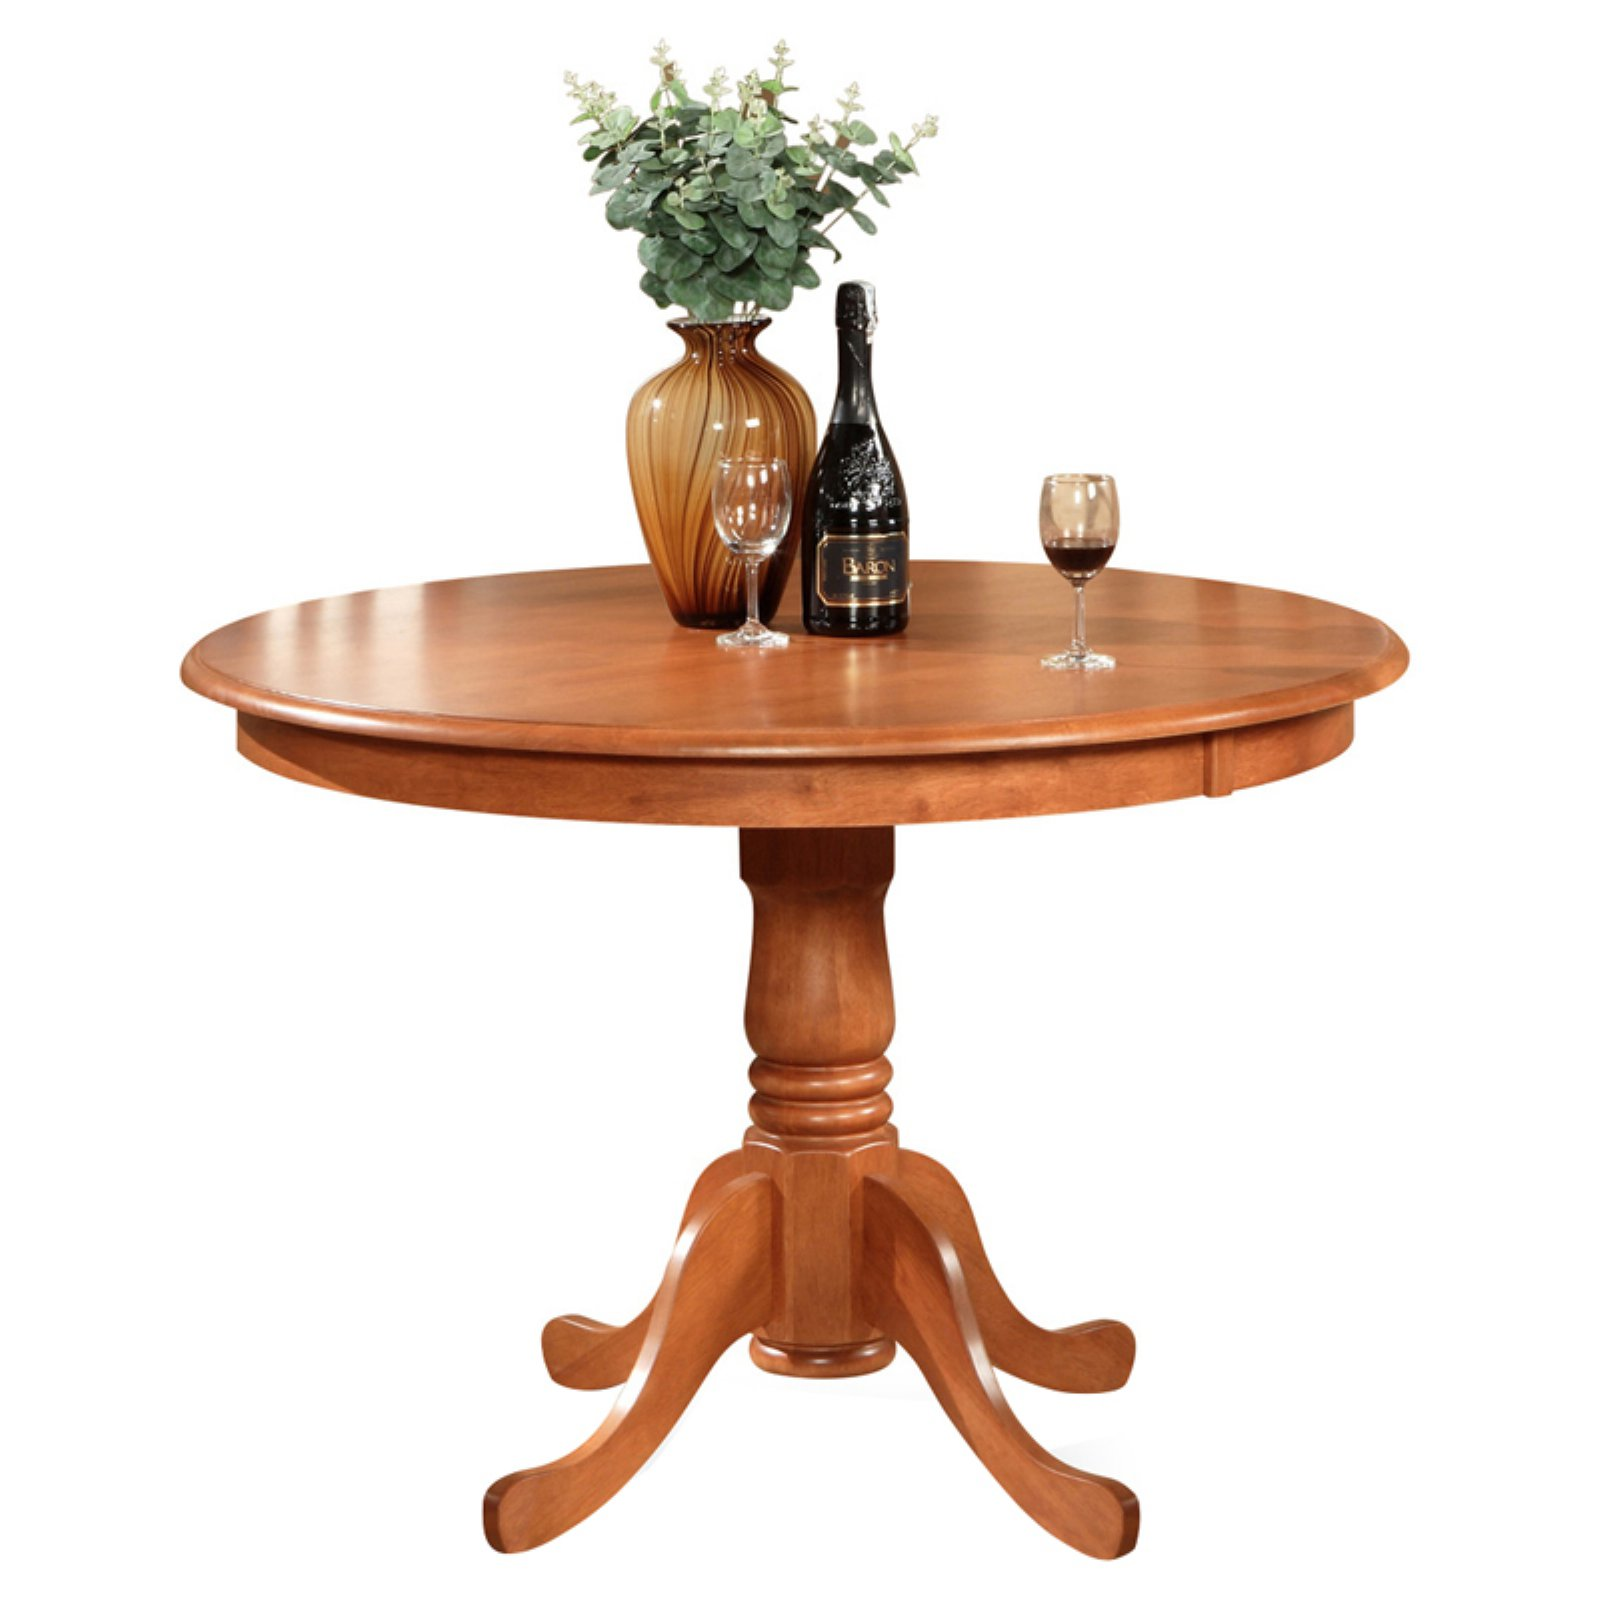 East West Furniture Hartland 42 Inch Round Pedestal Dining Table    Walmart.com